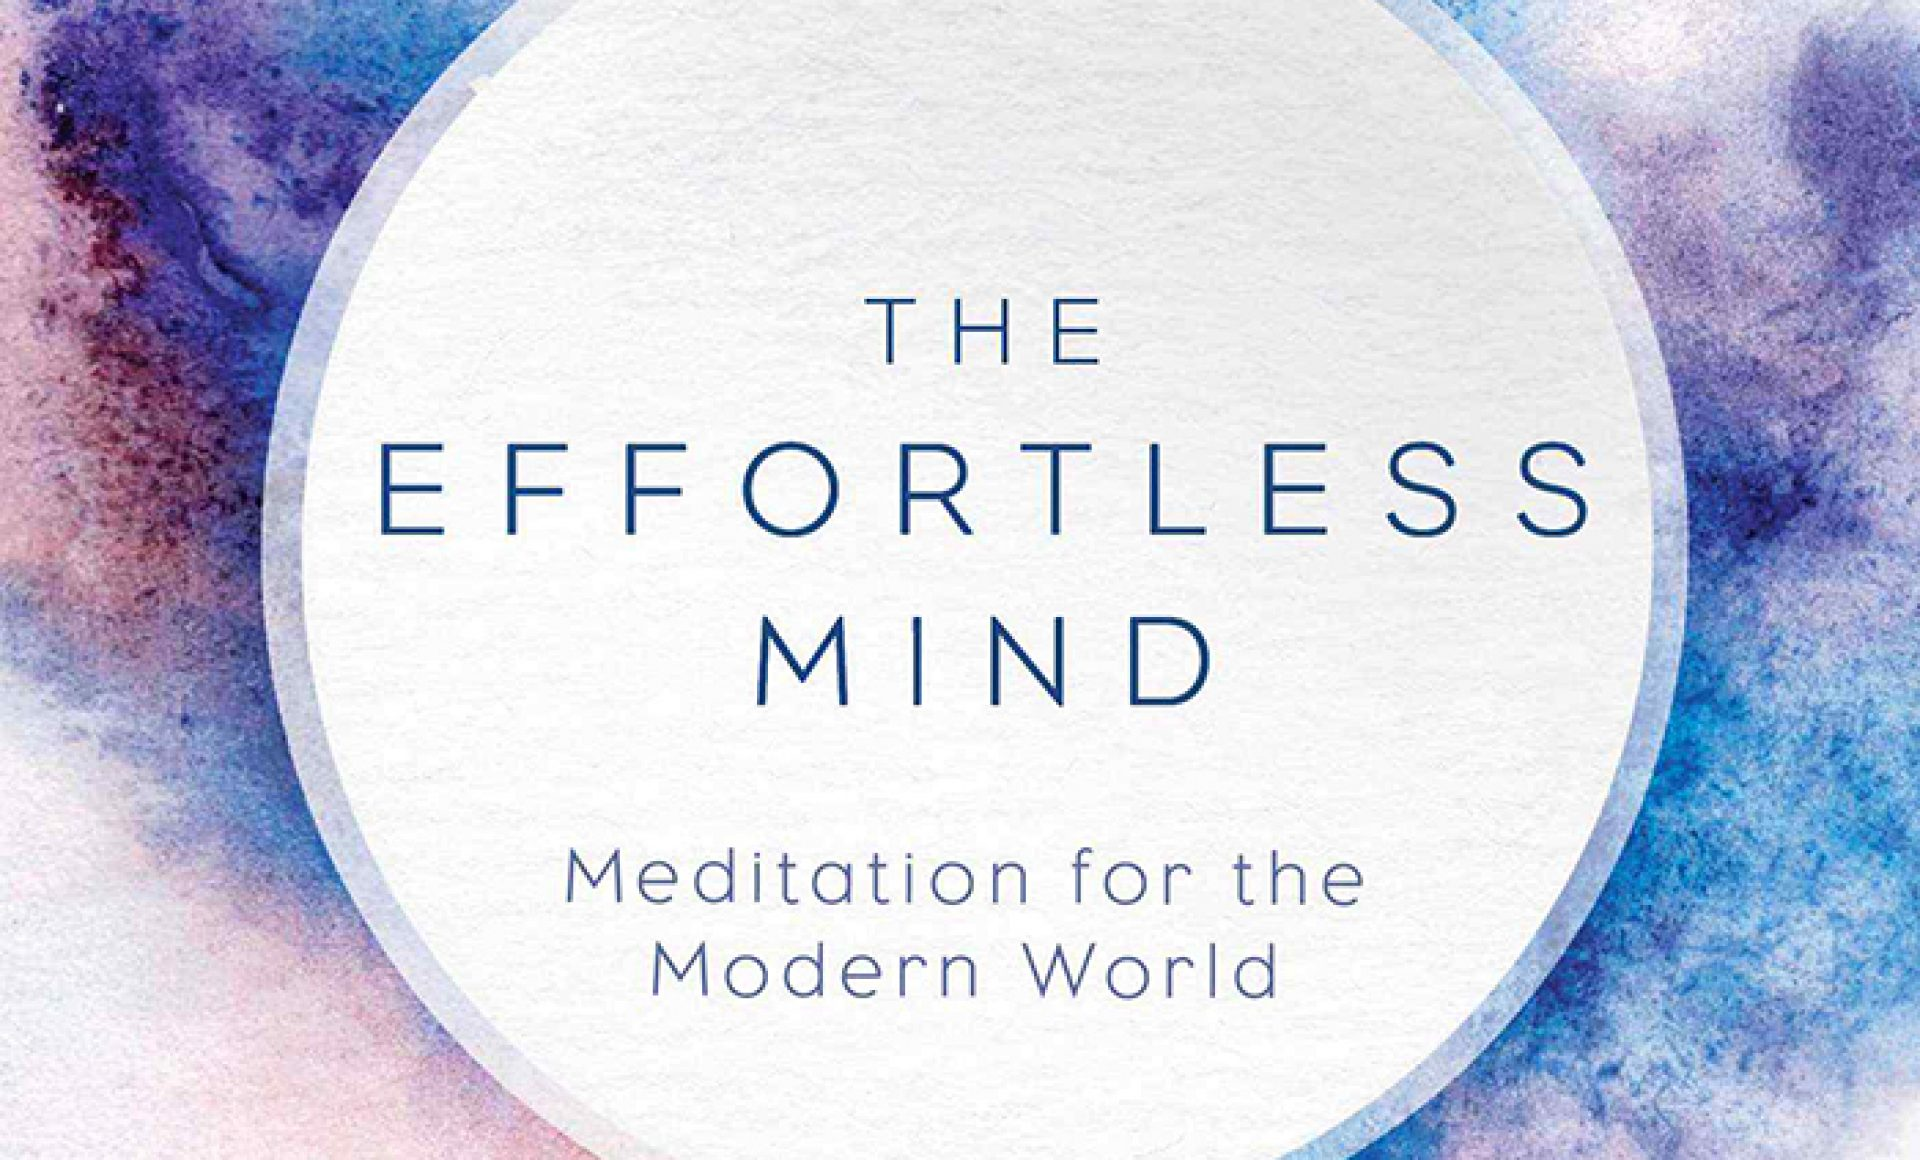 excerpt from the effortless mind